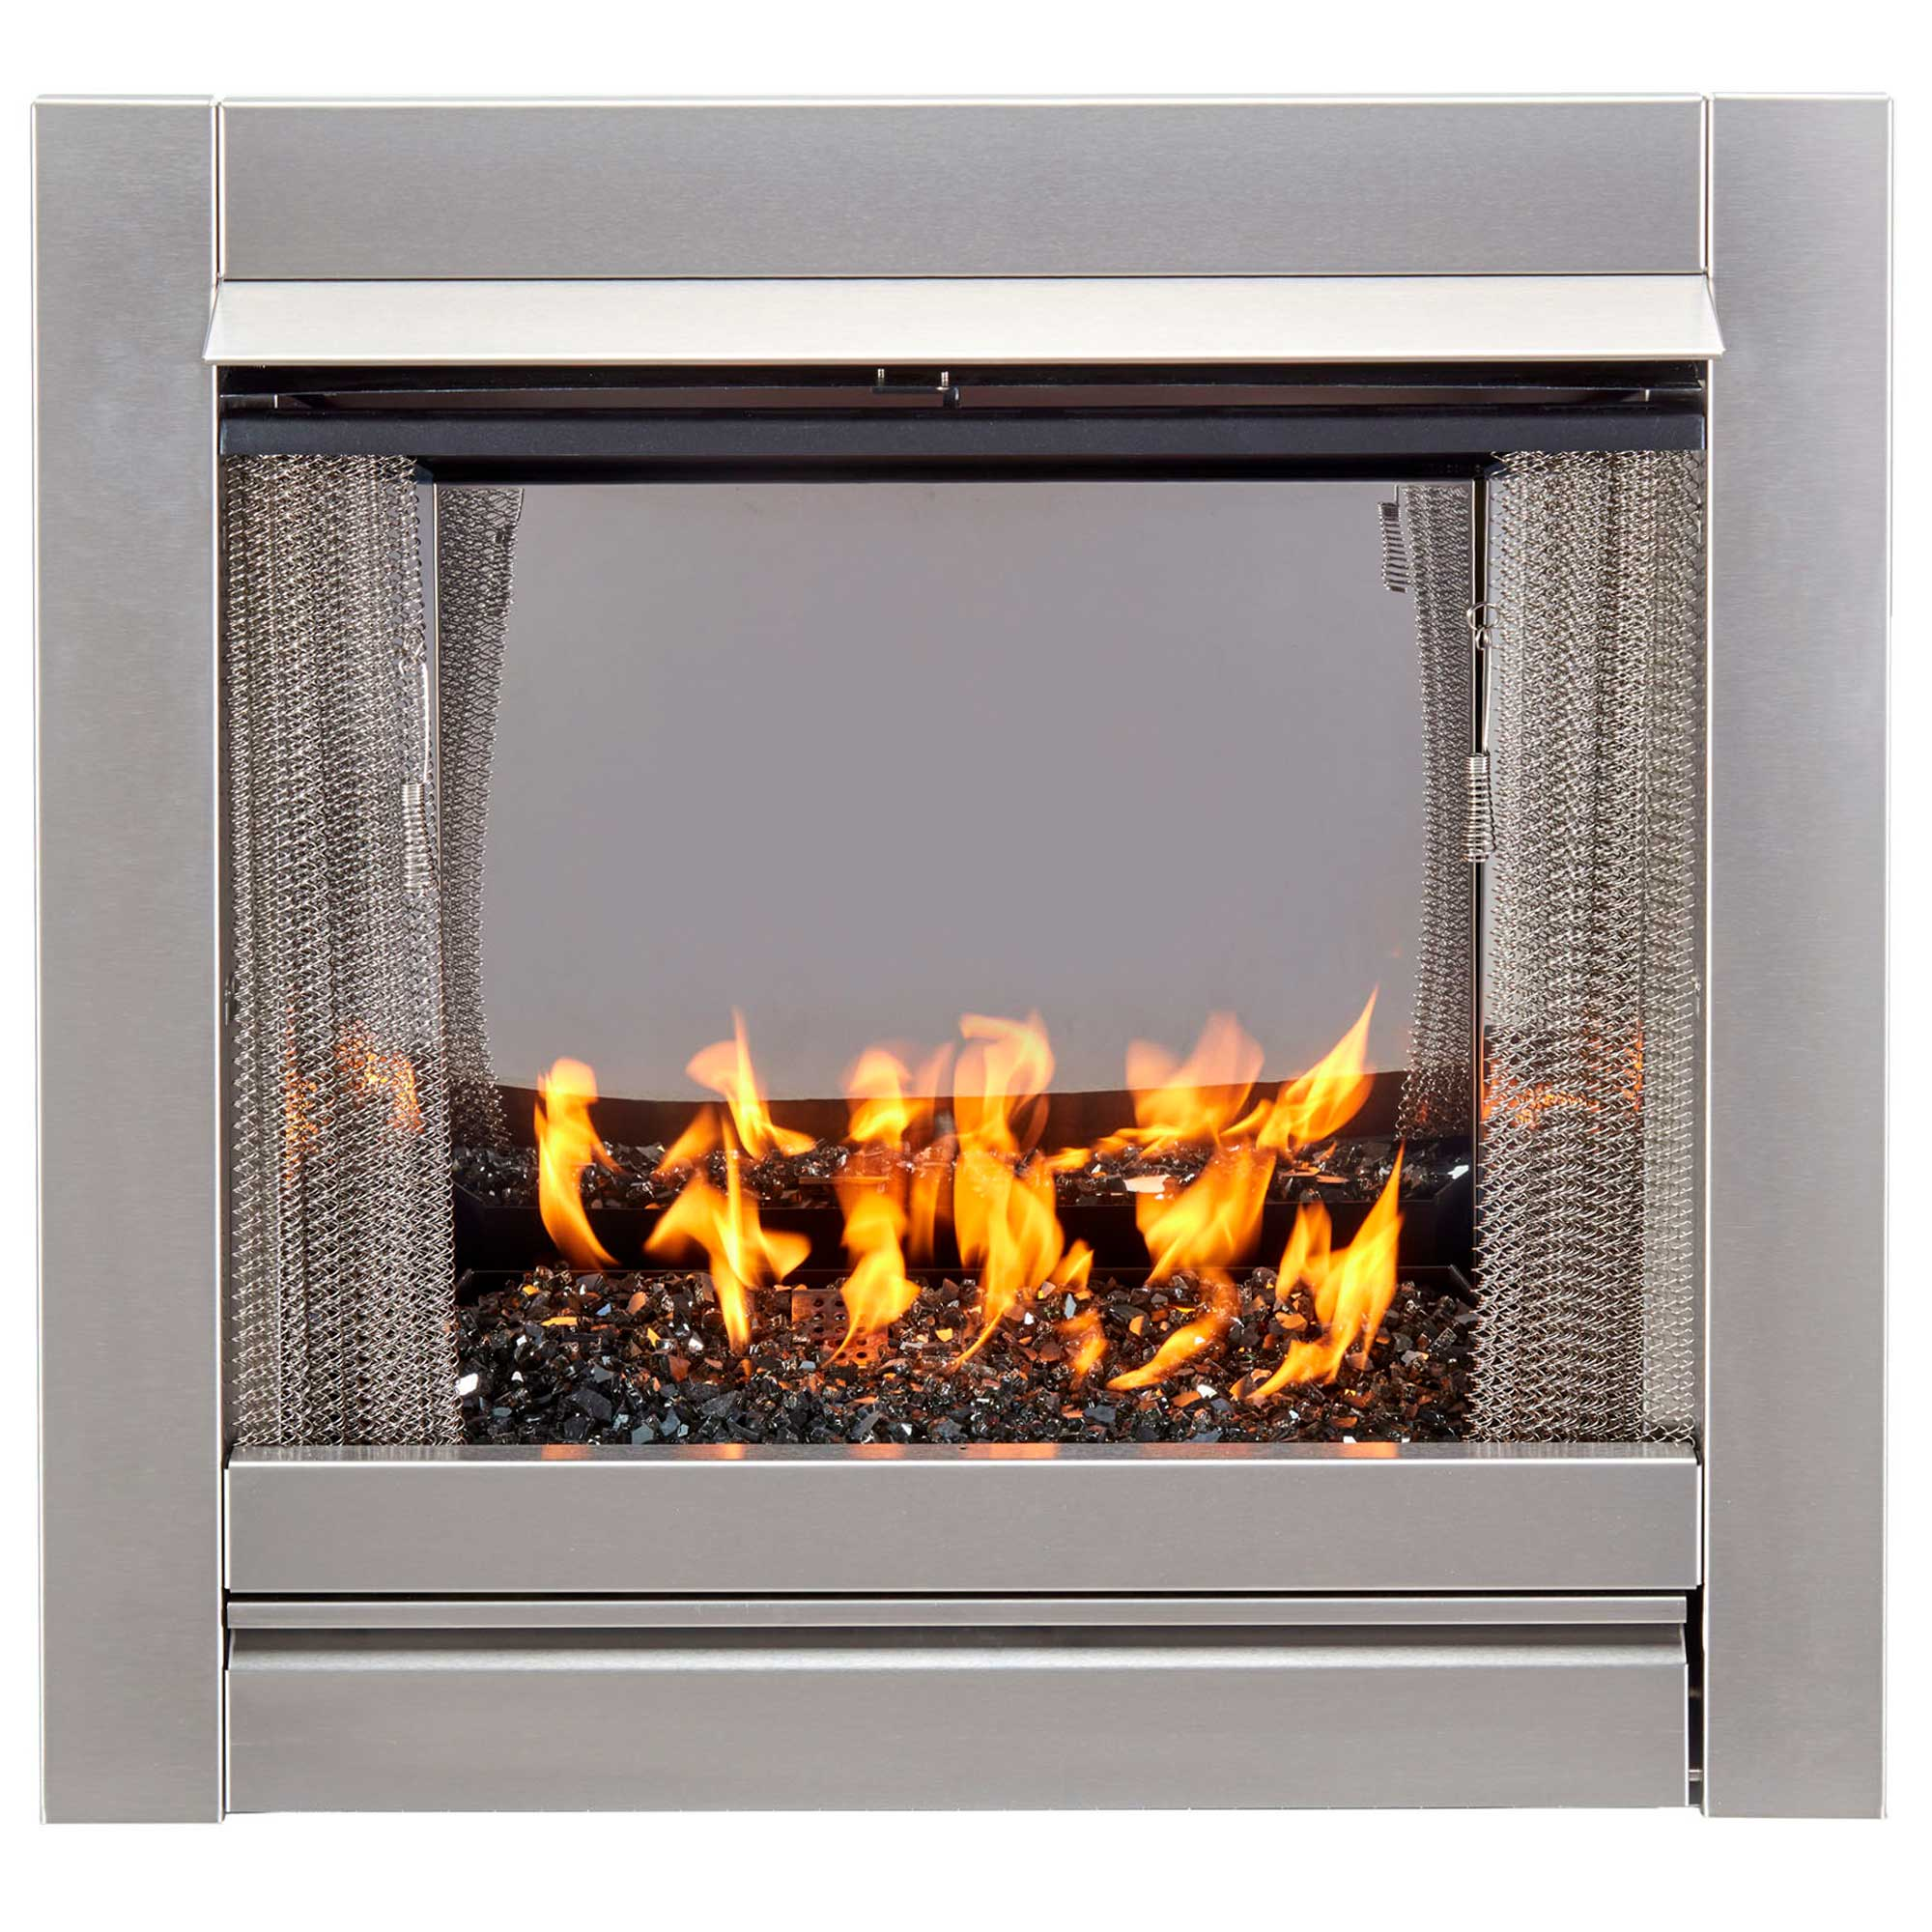 Duluth Forge Vent Free Stainless Outdoor Gas Fireplace Insert With